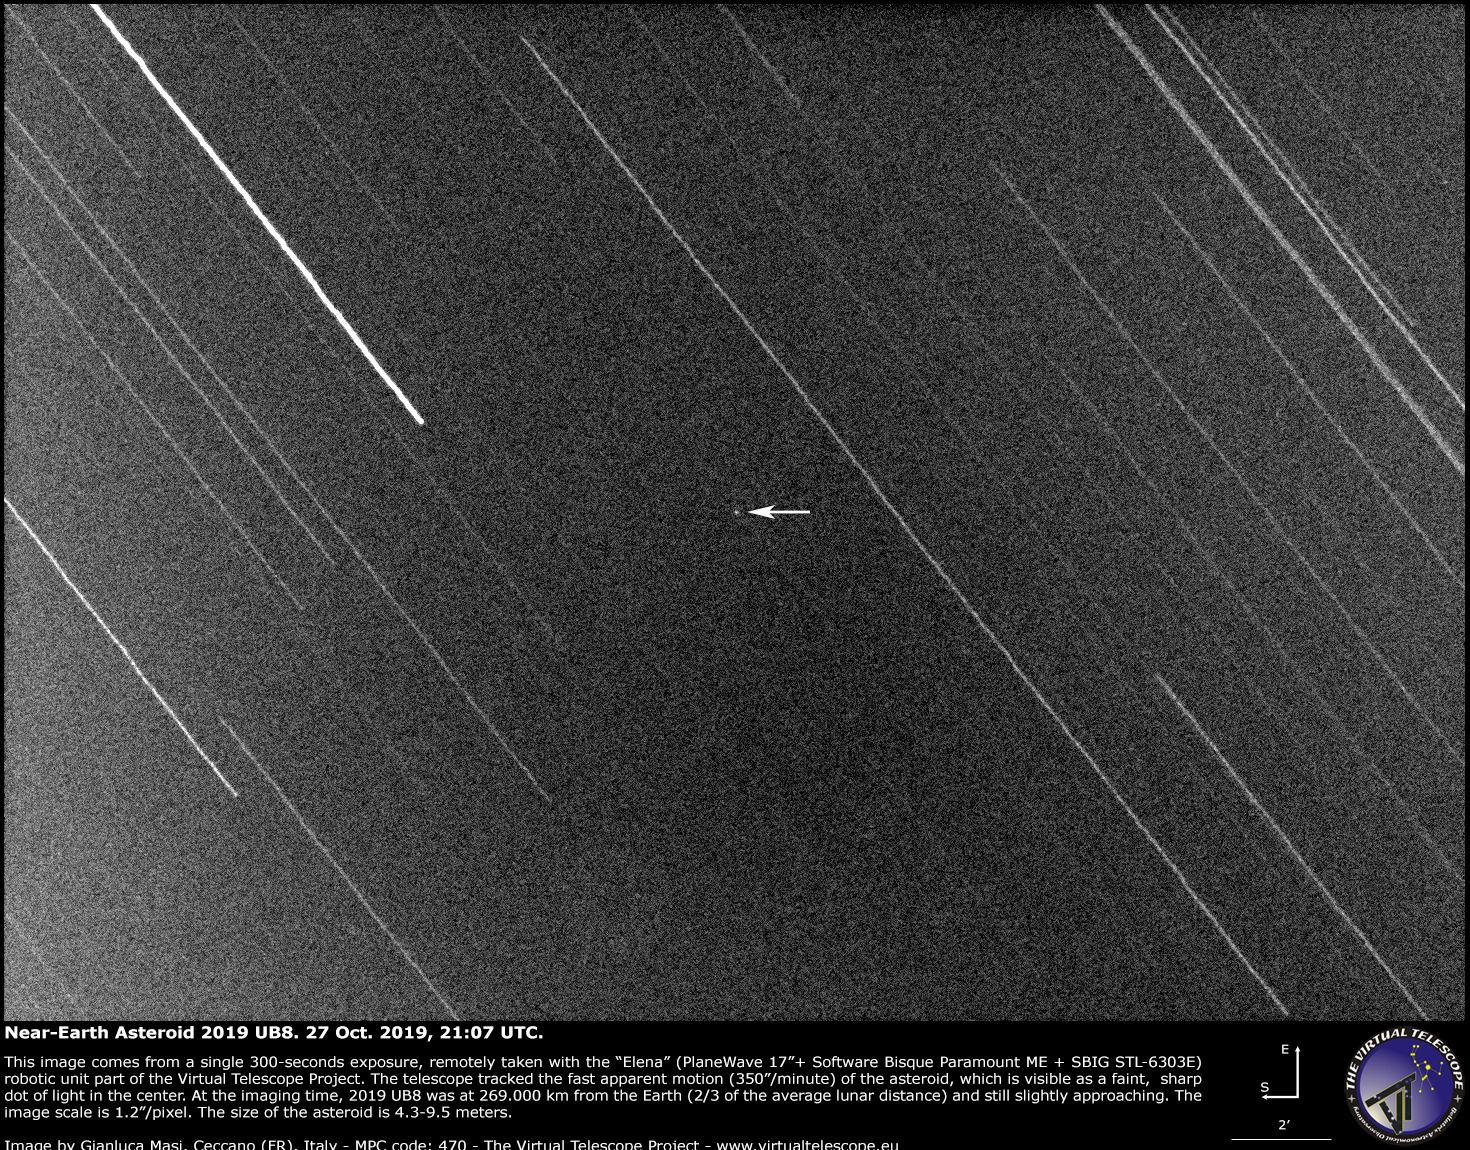 Near-Earth Asteroid 2019 UB8 very close encounter: an image (29 Oct. 2019)